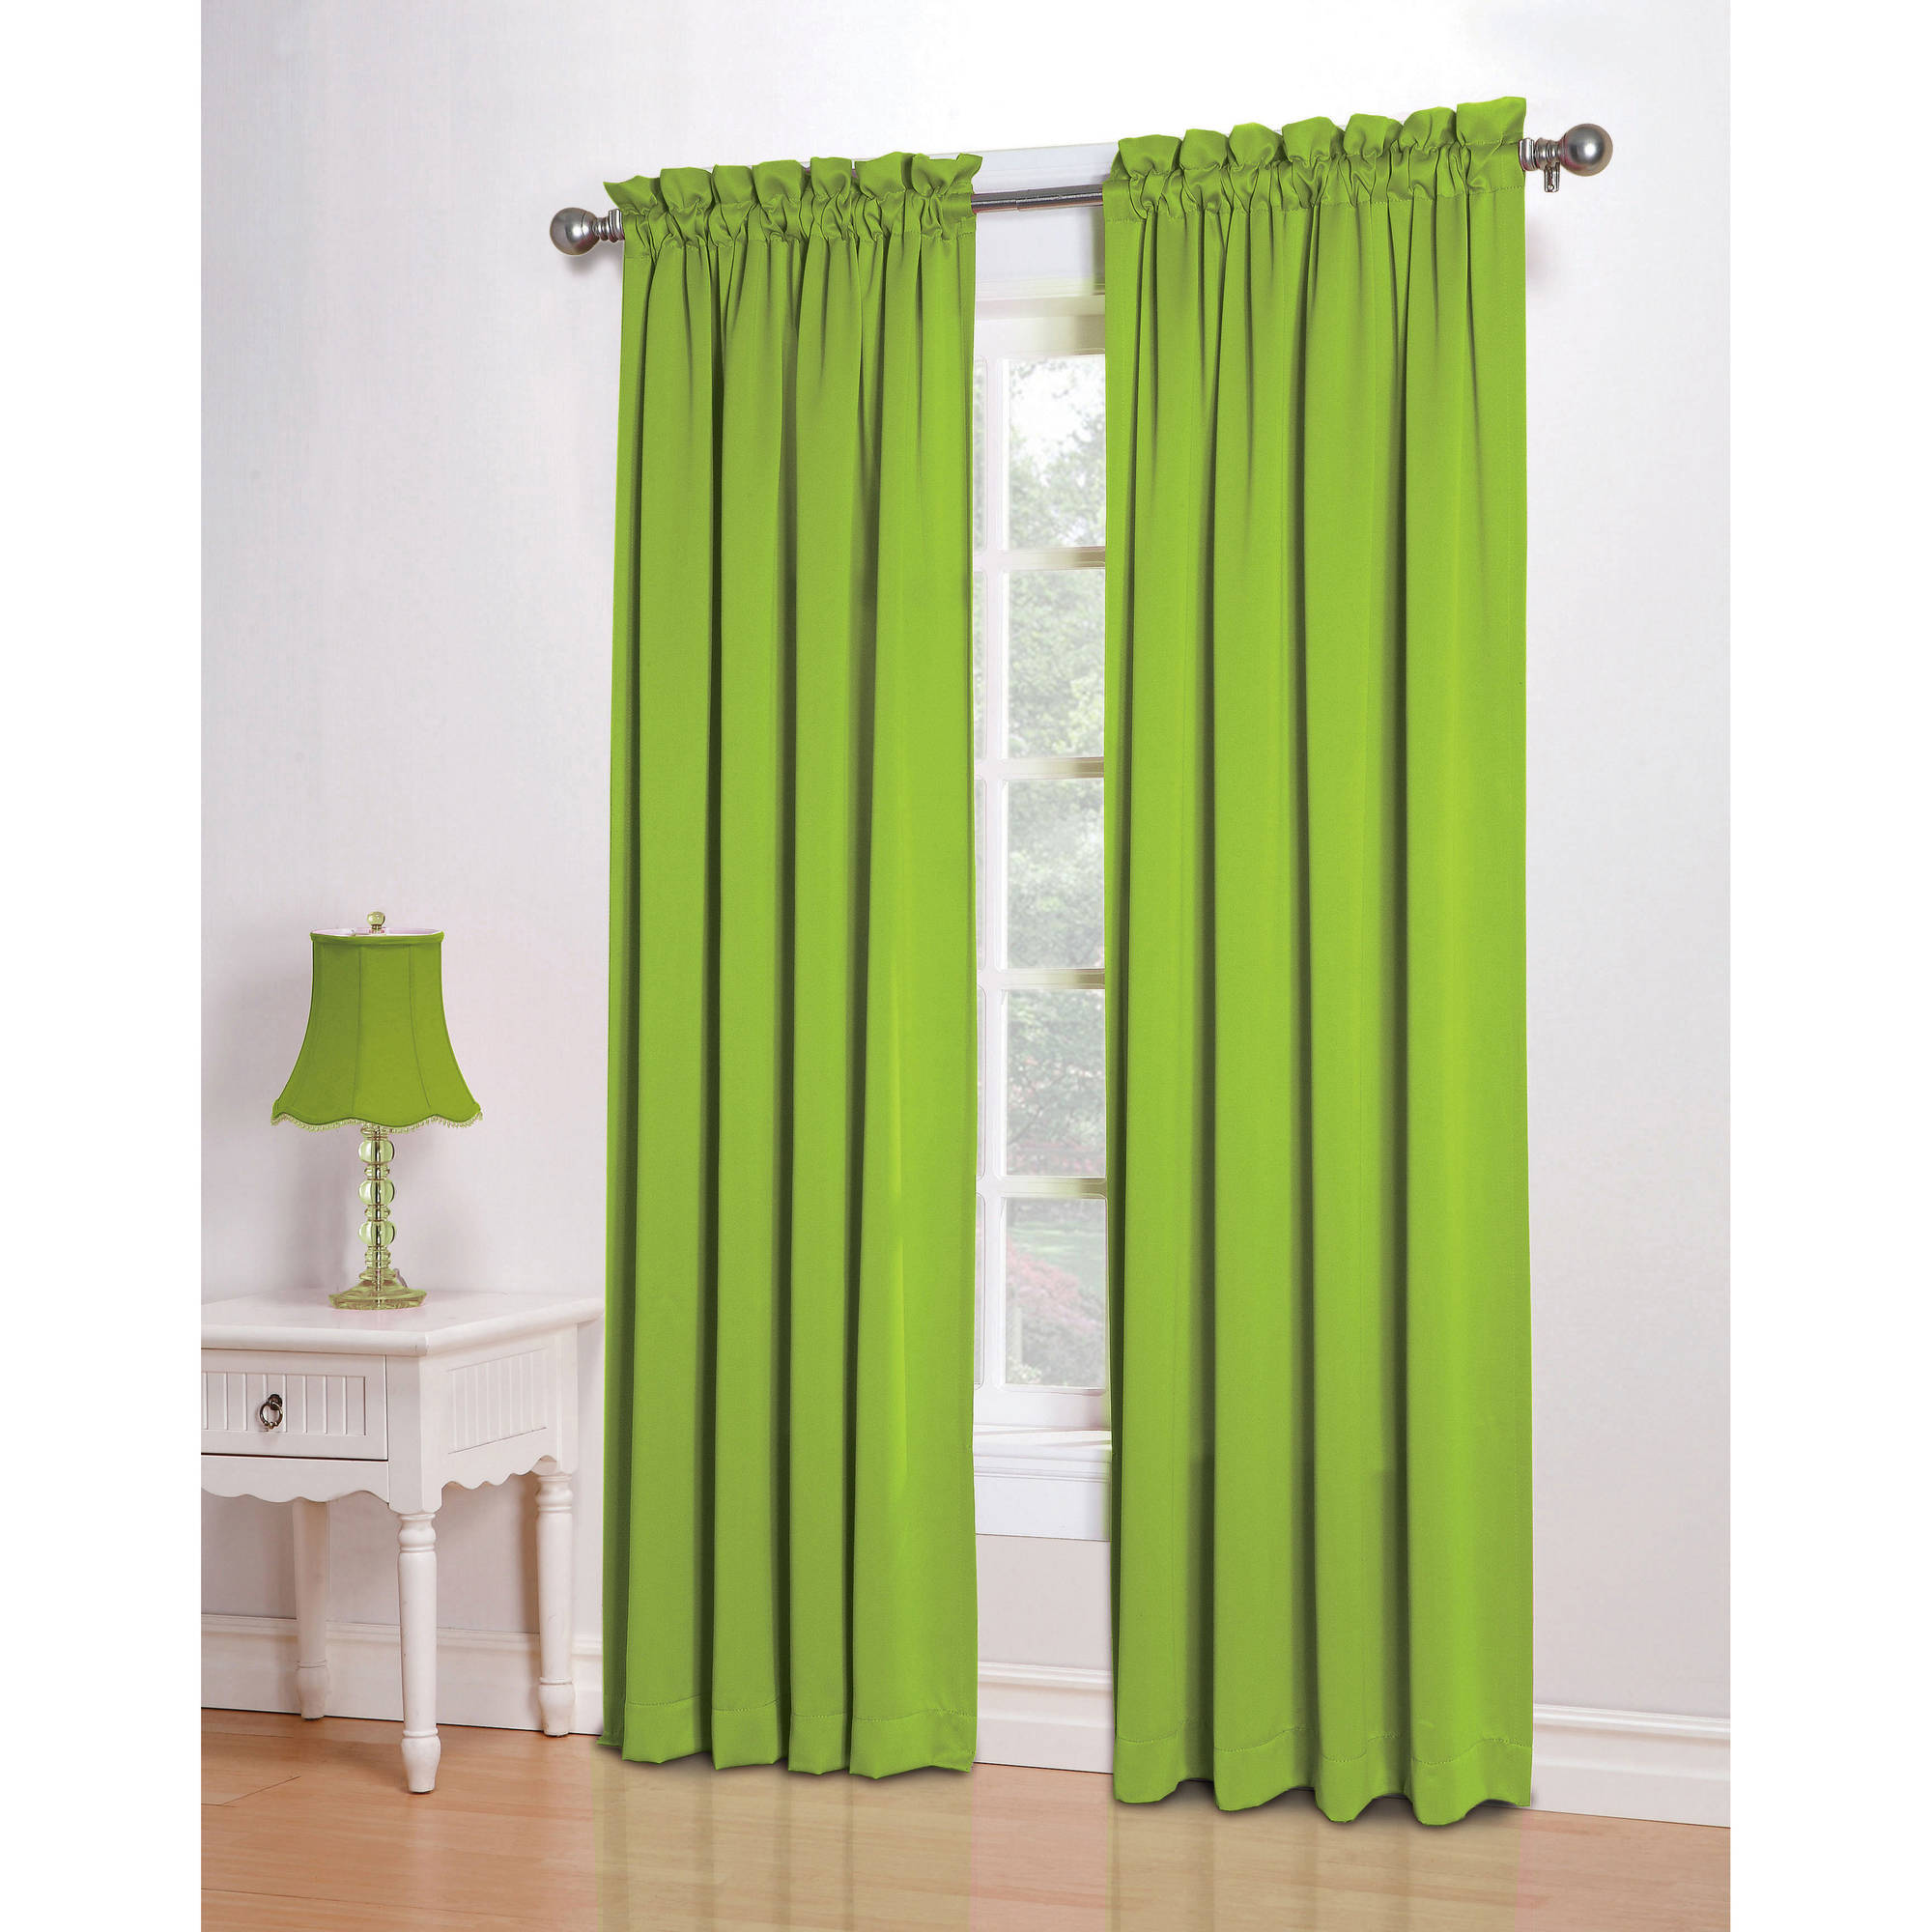 Sun Zero Kylee Room-Darkening Energy-Efficient Curtain Panel